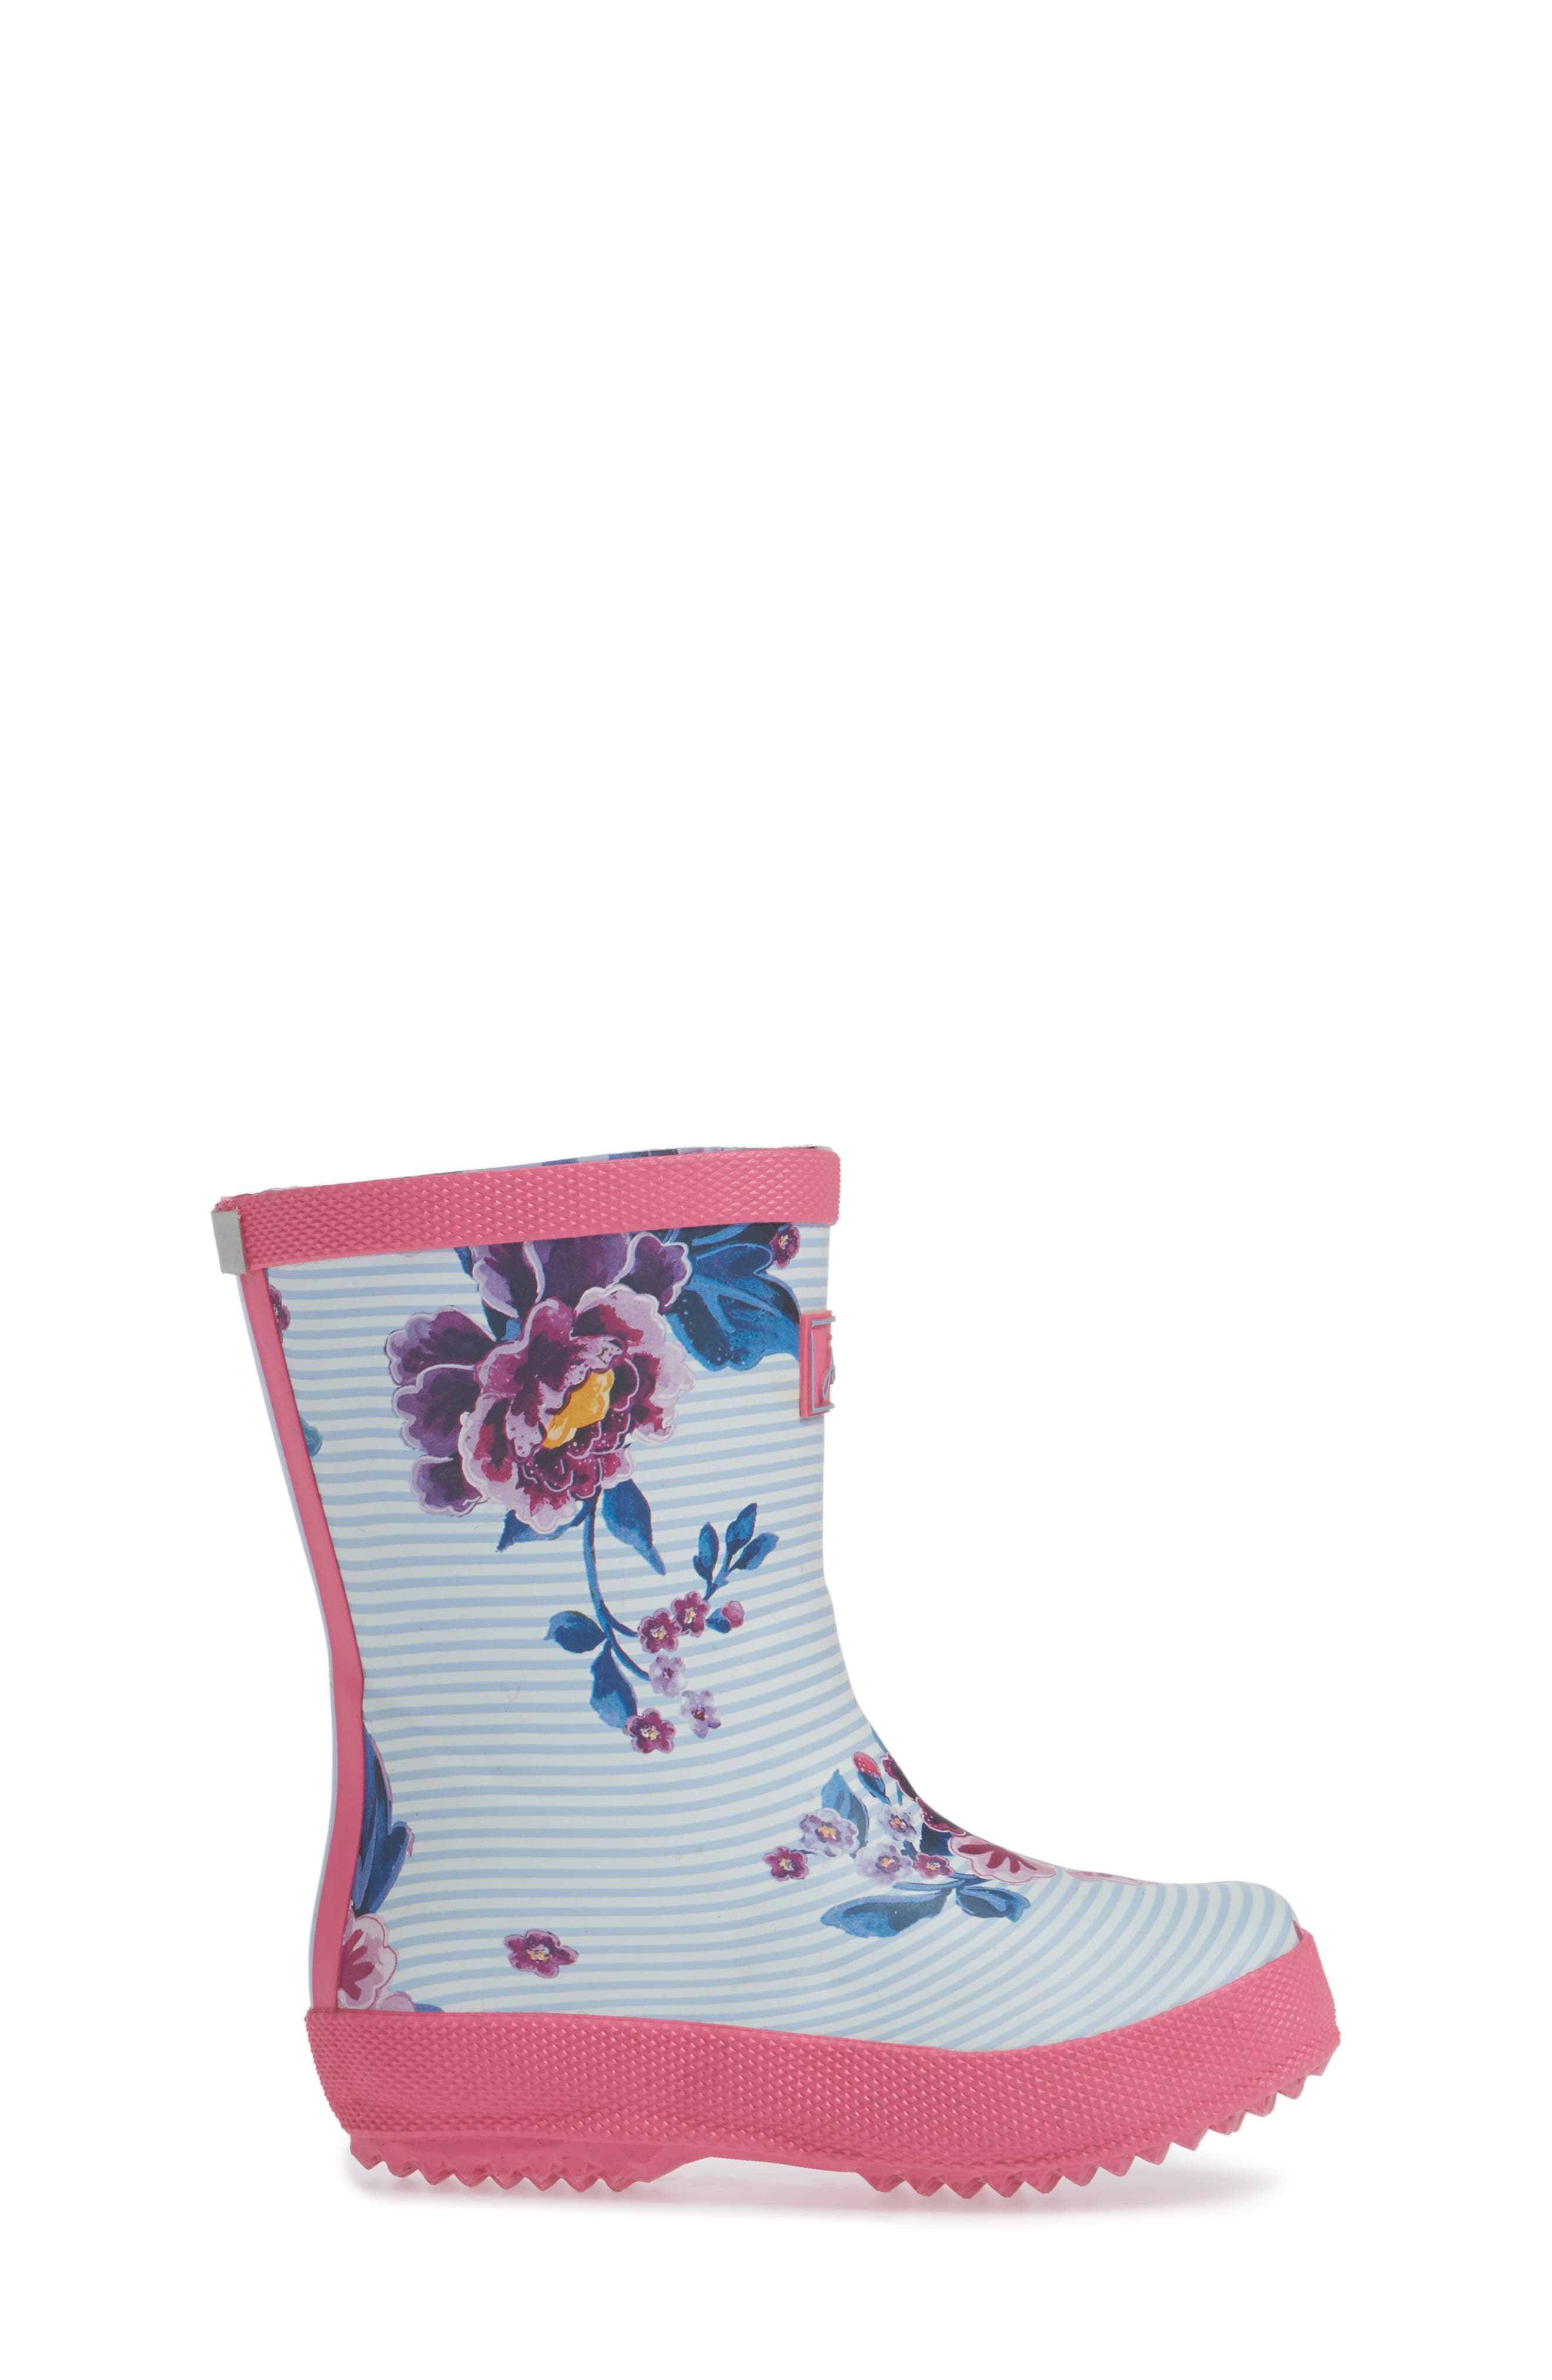 Baby Welly Print Waterproof Boot,                             Alternate thumbnail 3, color,                             Sky Blue Chinoiserie Floral